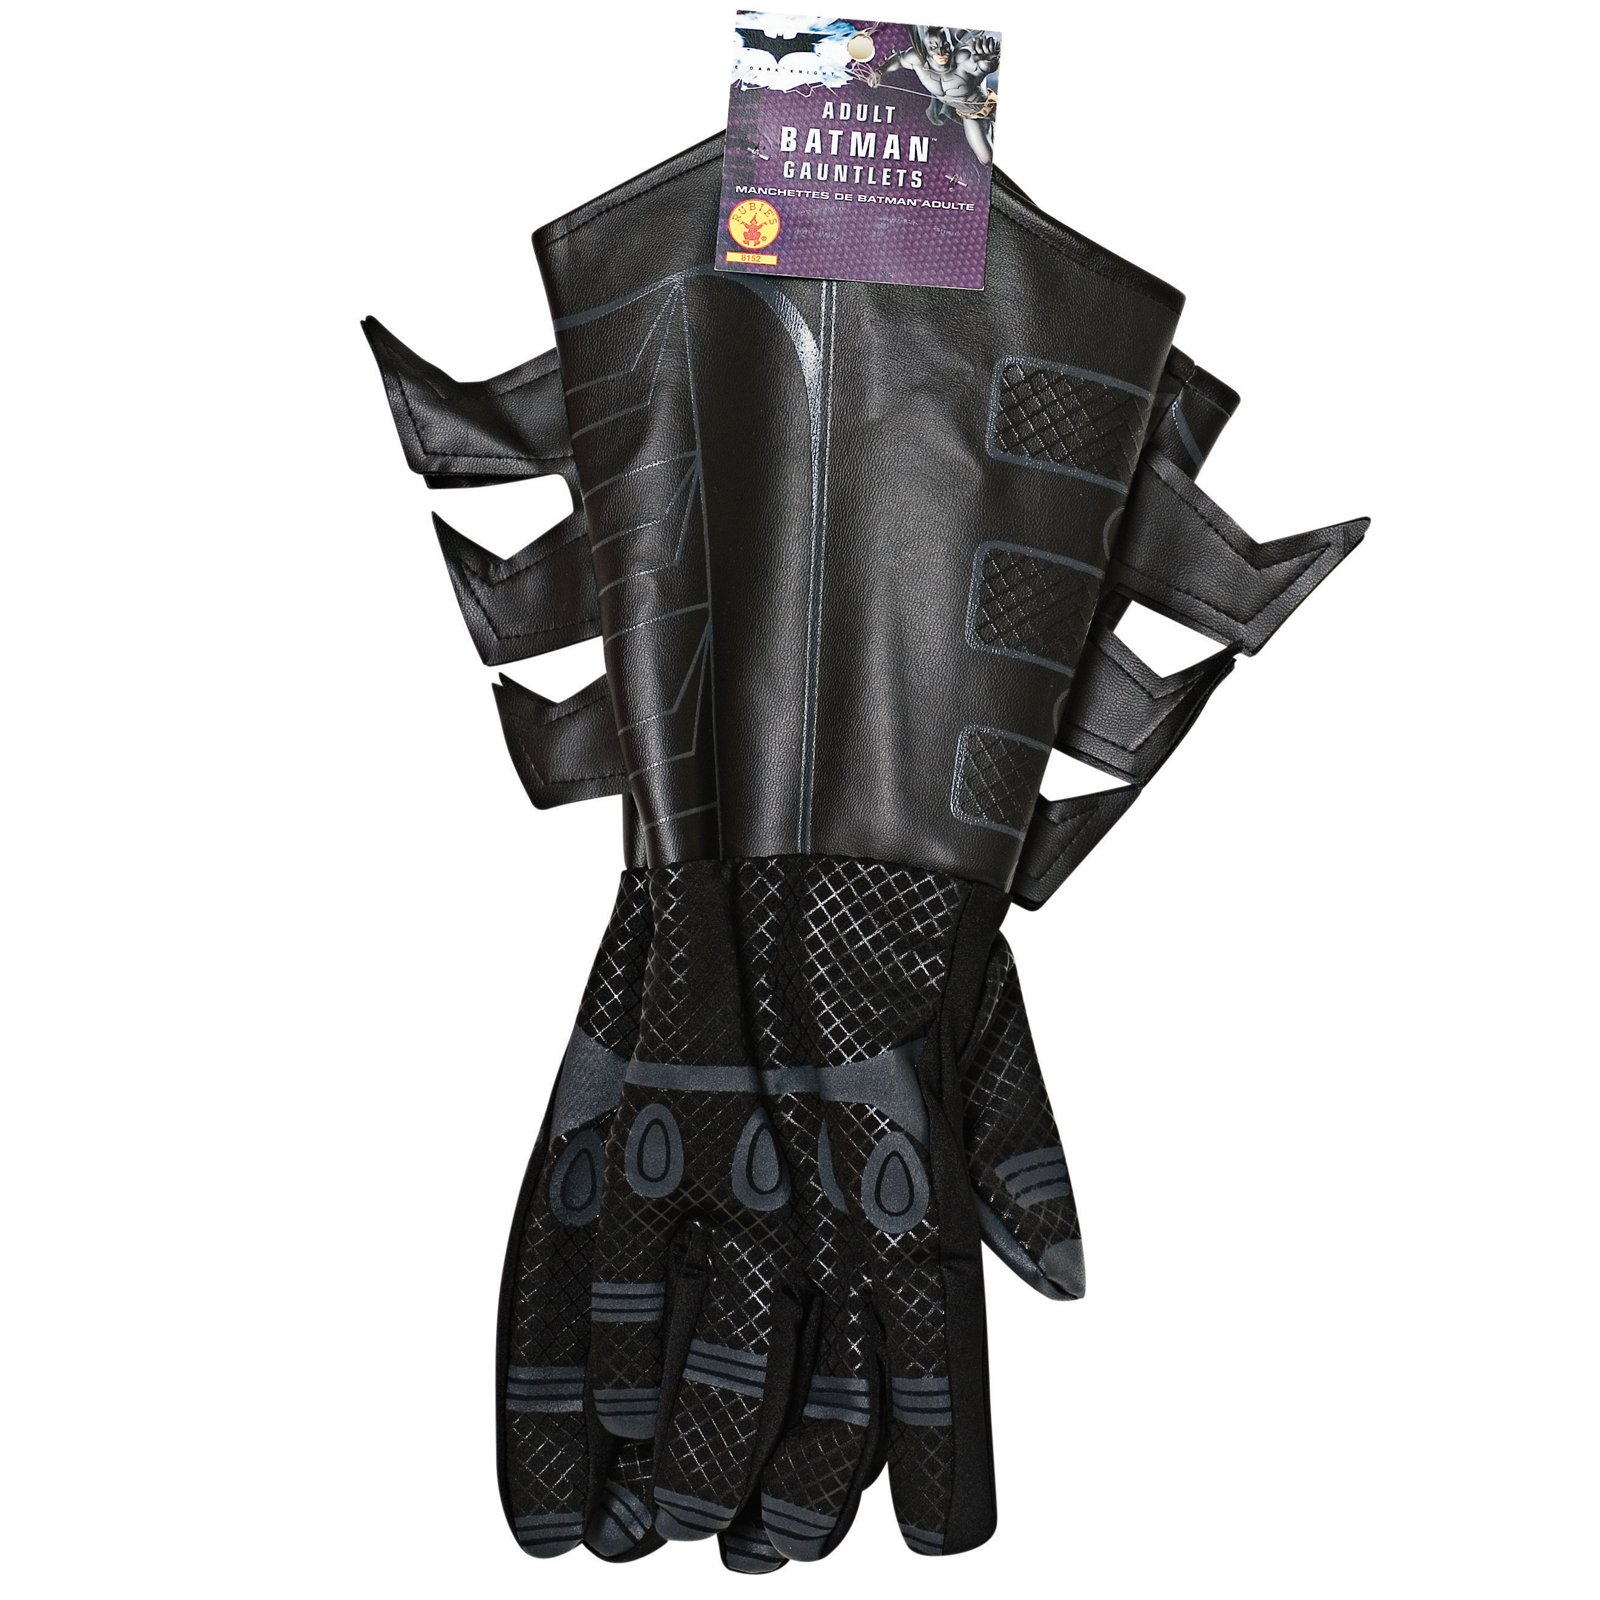 Batman Dark Knight Adult Batman Gauntlets